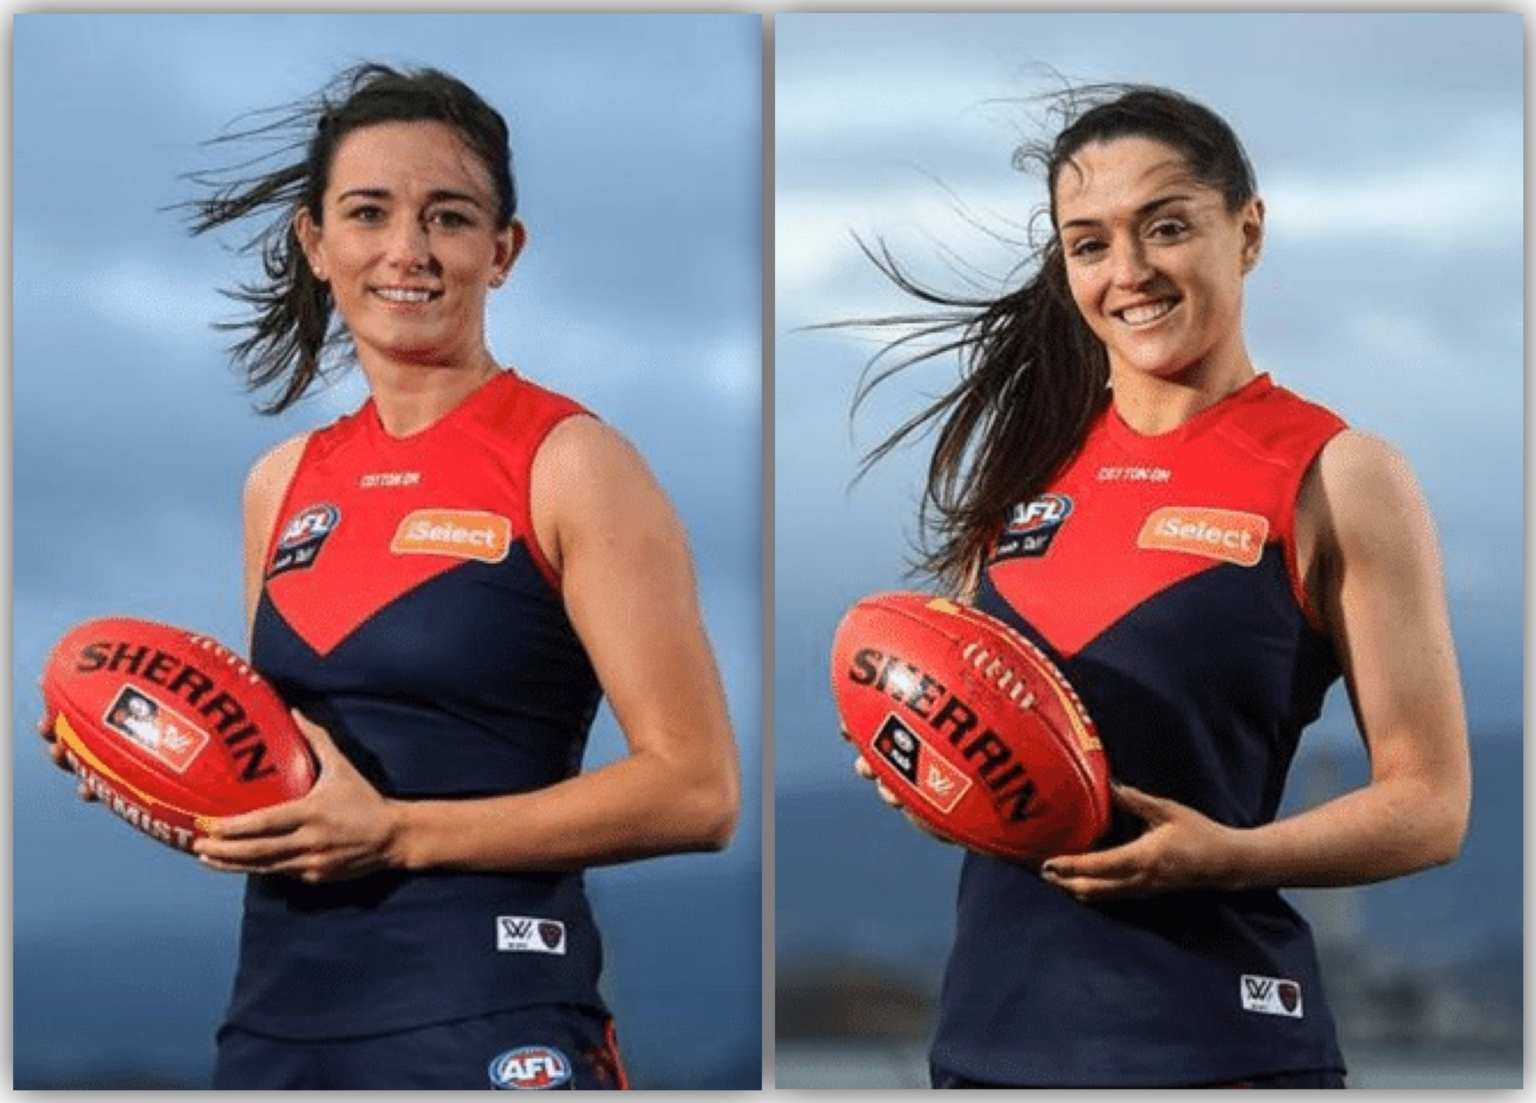 Dublin's Niamh McEvoy (Left) And Sinead Goldrick (Right) wearing Melbourne FC Jersey after its announced they have signed for the club for the 2020 AFLW season.